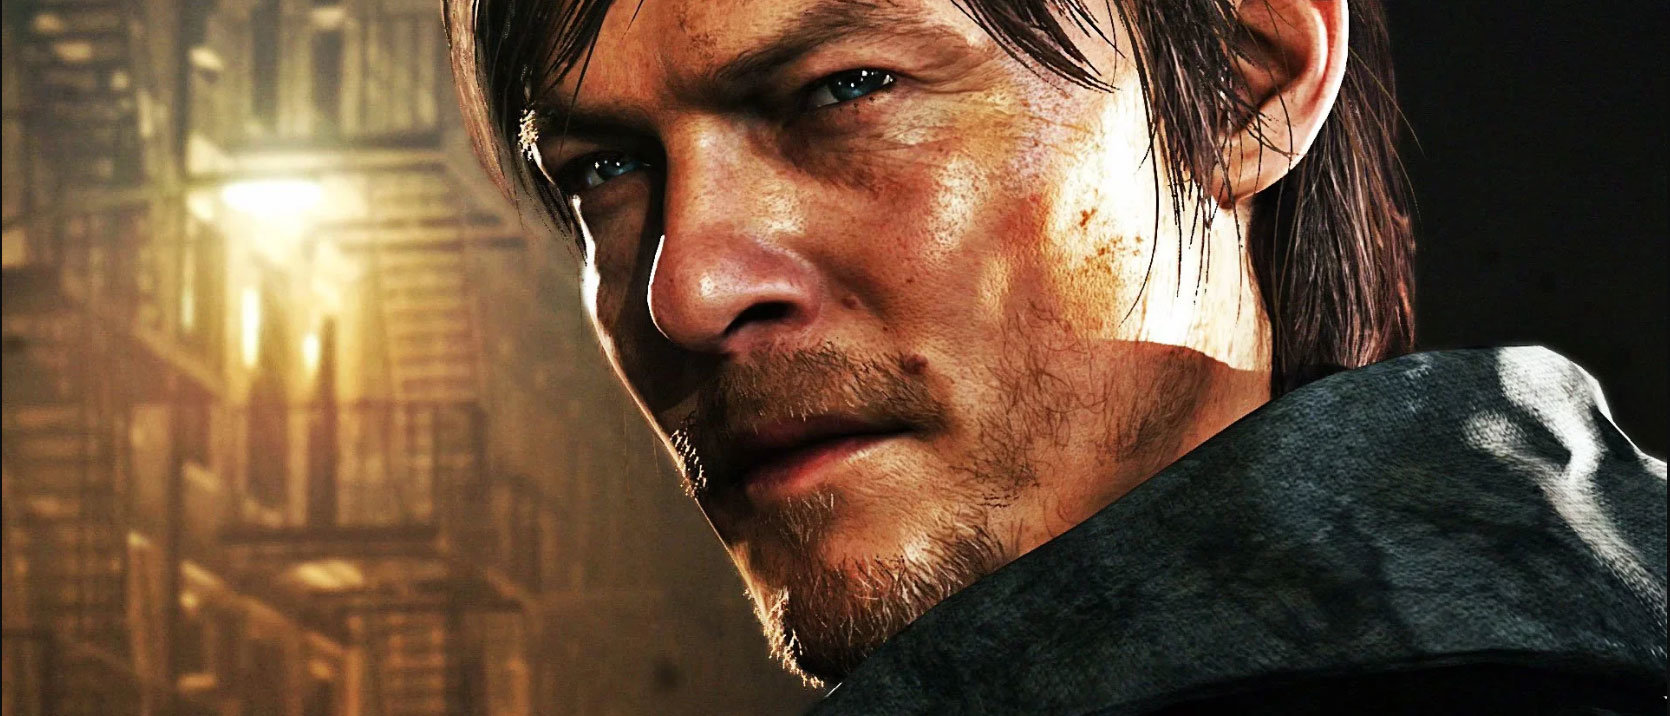 Silent-Hill-Video-Game-PS5-Normal-Reedus